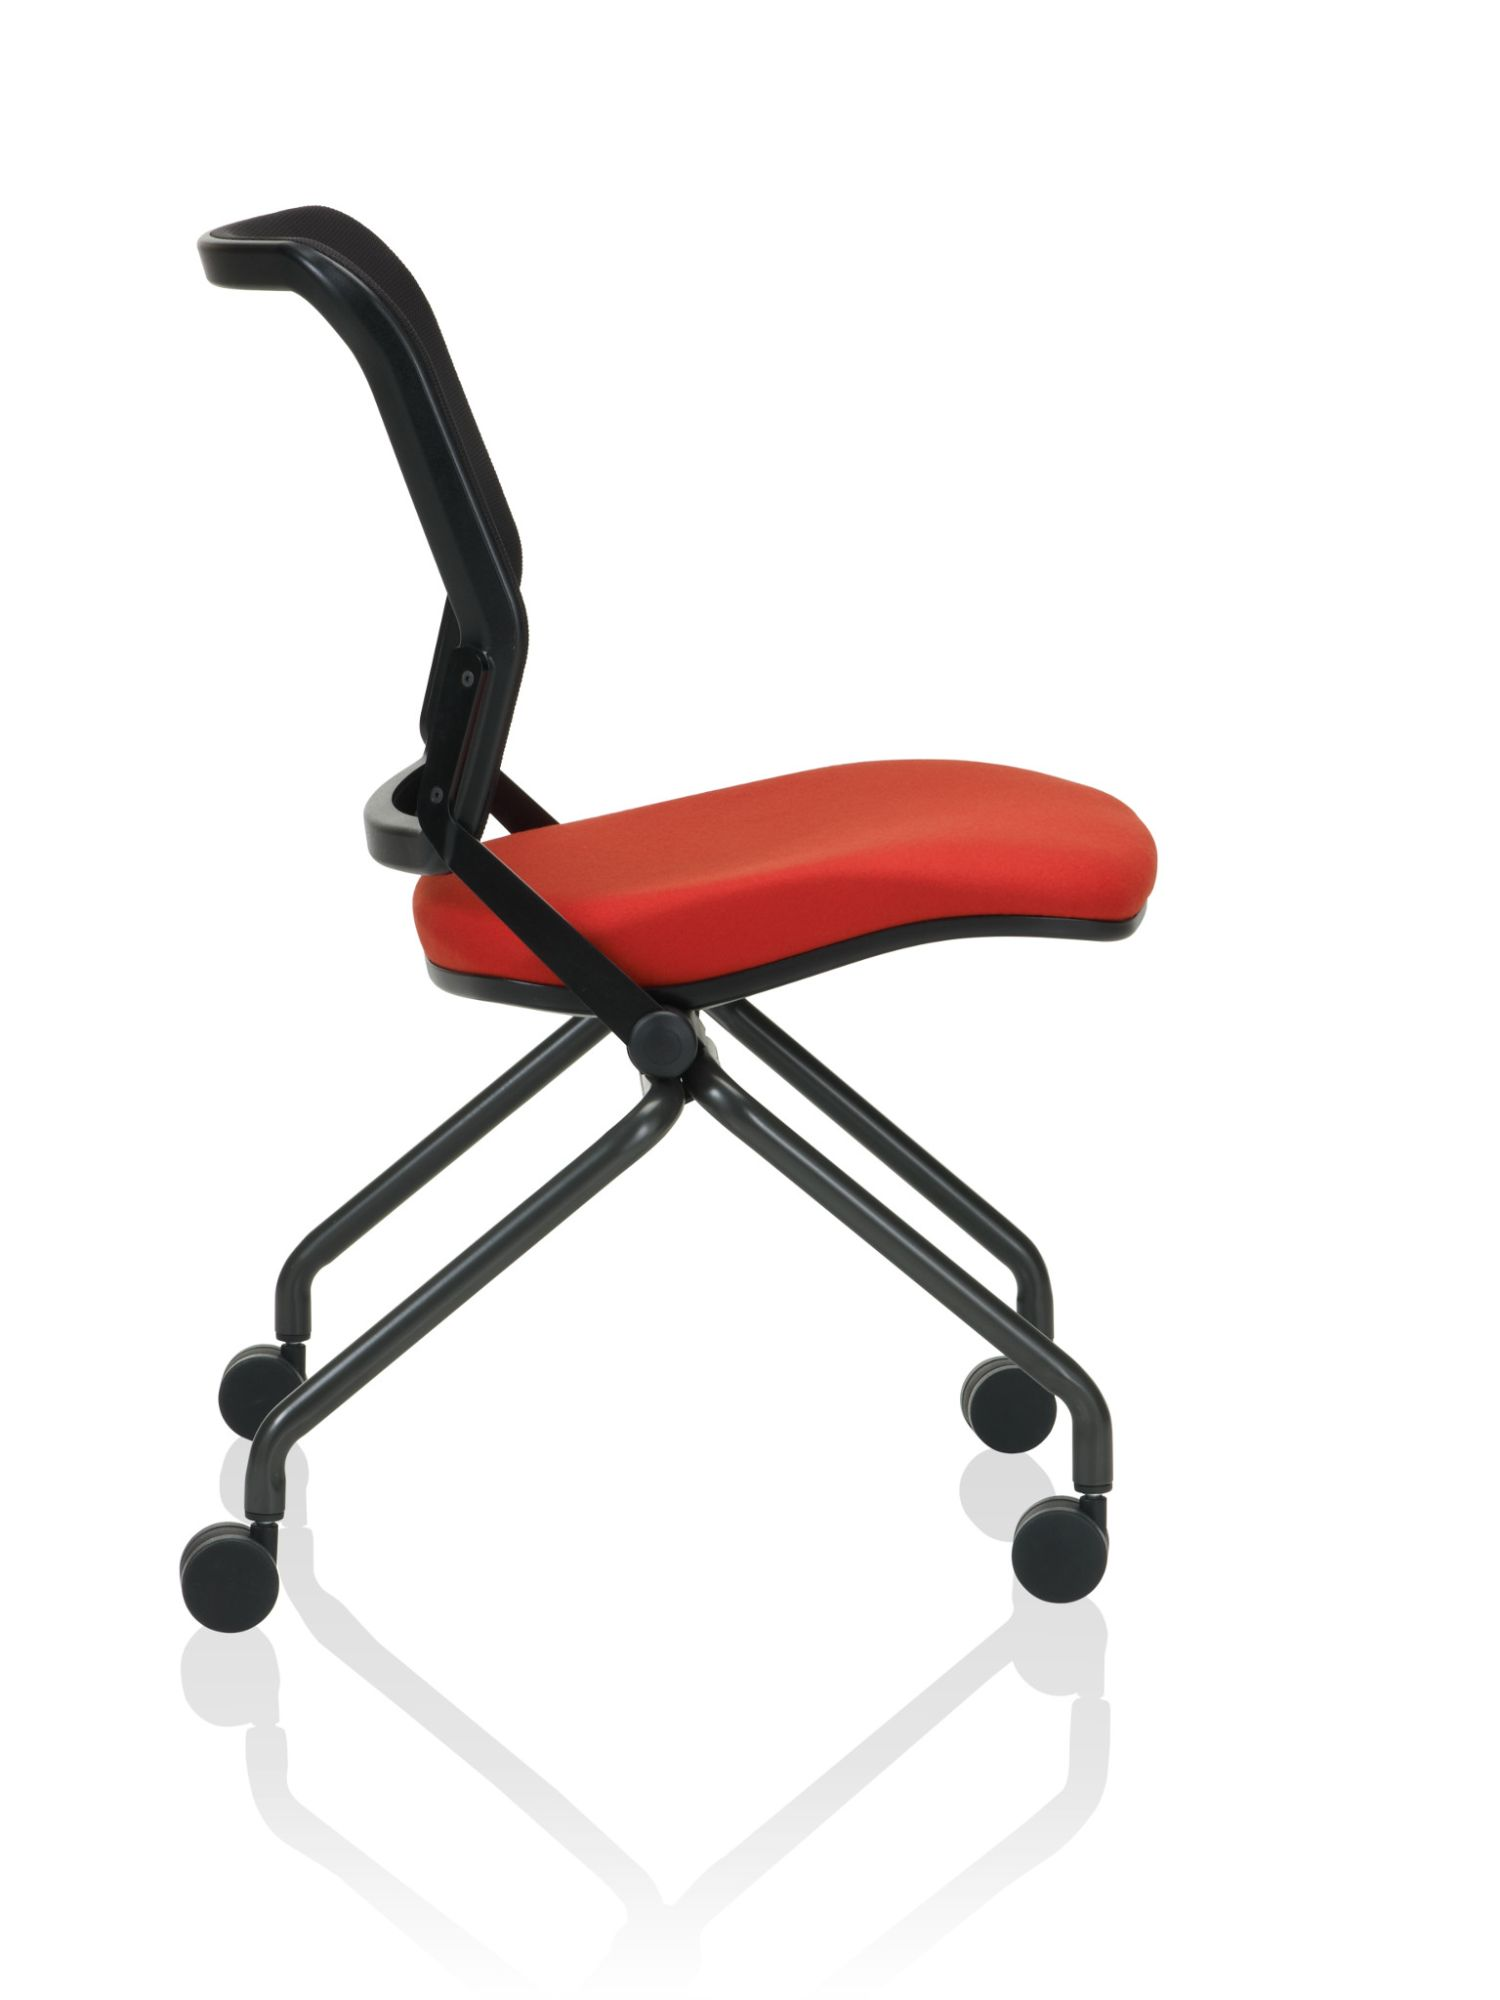 ki torsion air chair side profile